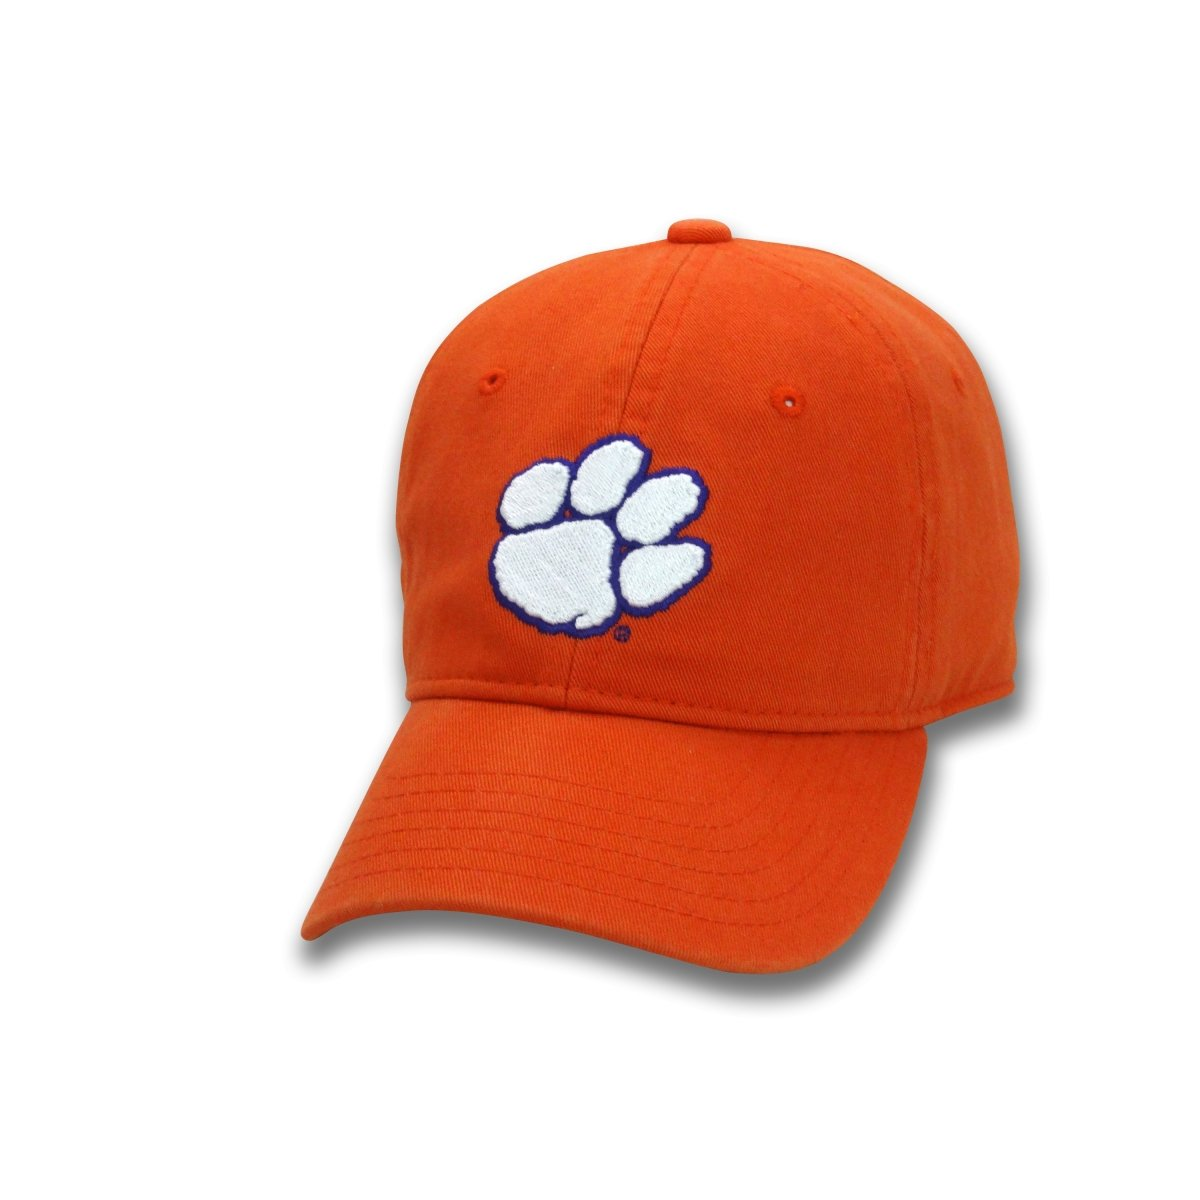 Clemson Tigers Adjustable Youth Hat - Paw on front with Clemson on back strap - Mr. Knickerbocker